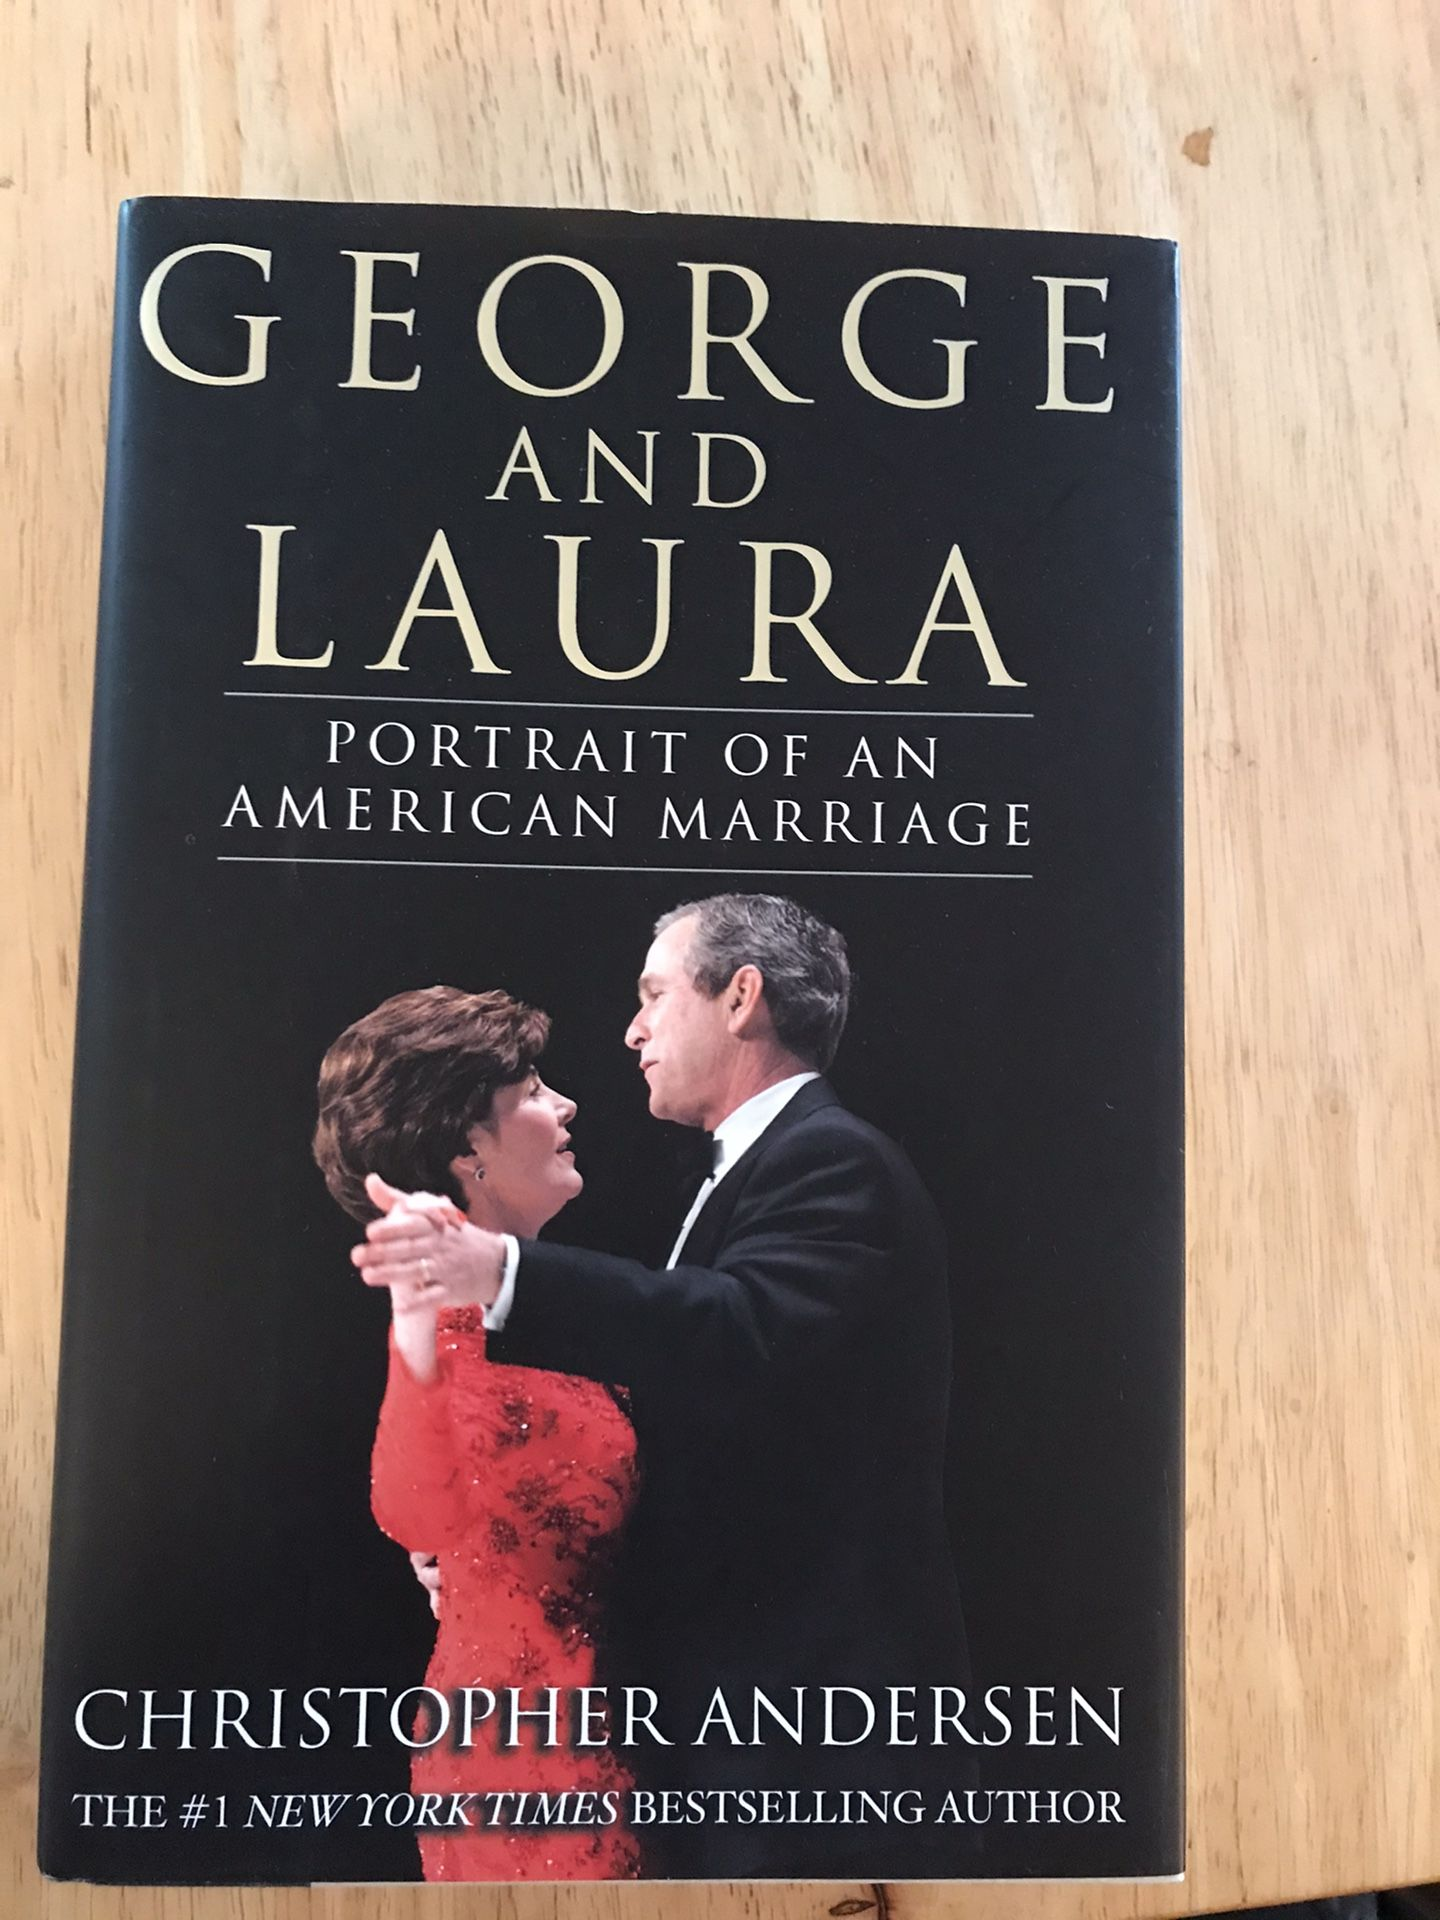 George and Laura Portrait of an American Marriage